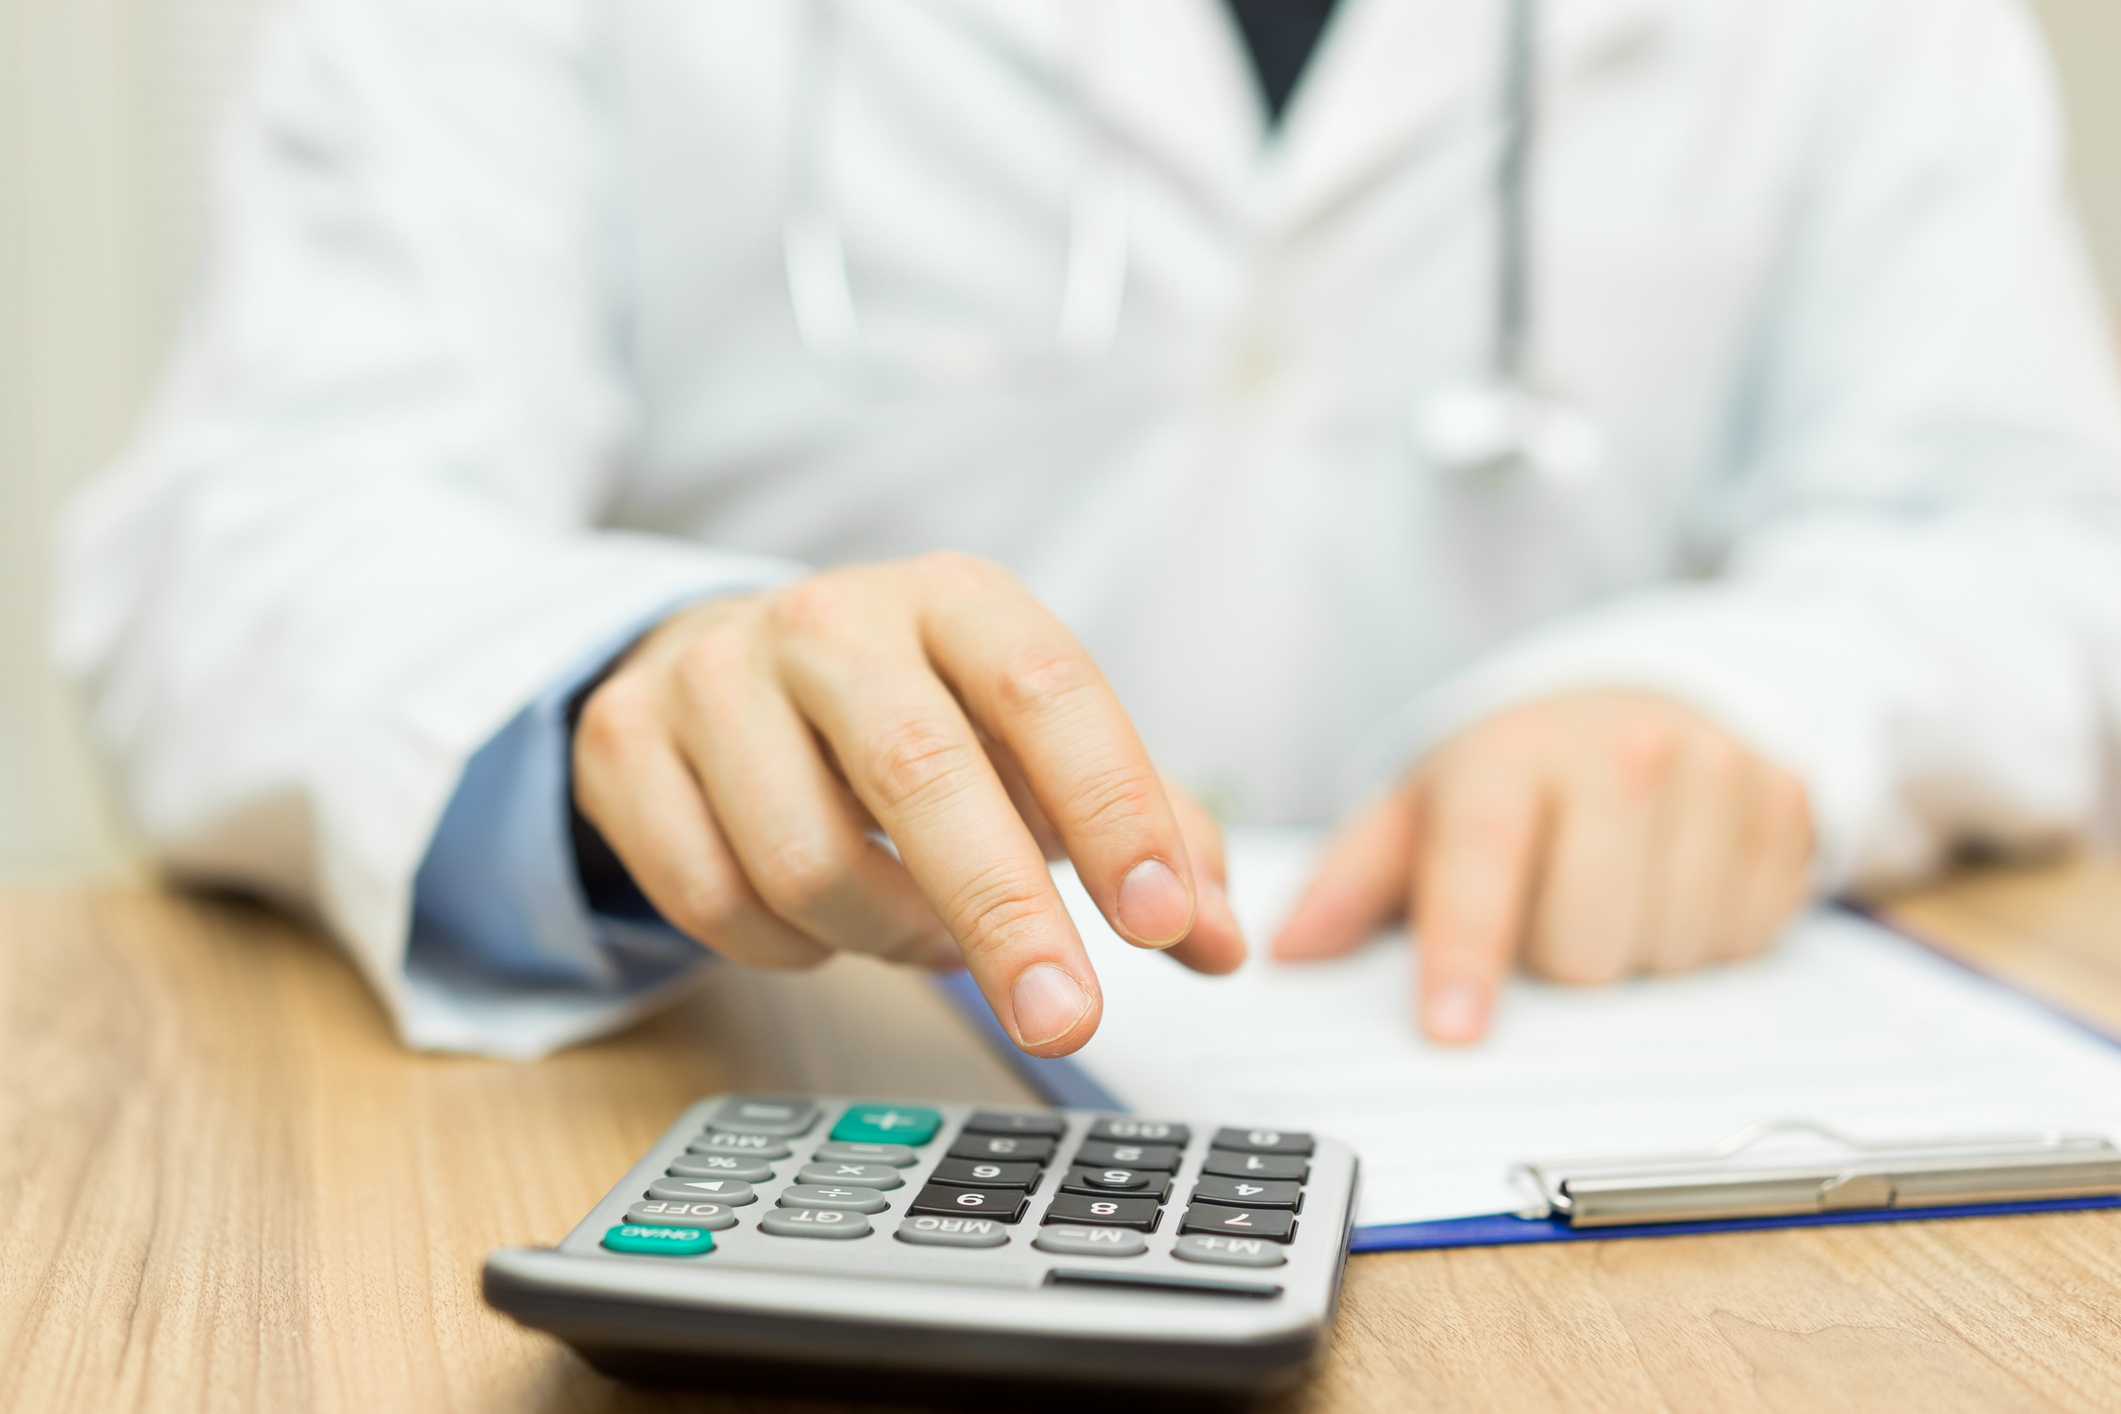 Physician Assistant (PA) Salaries in 2021